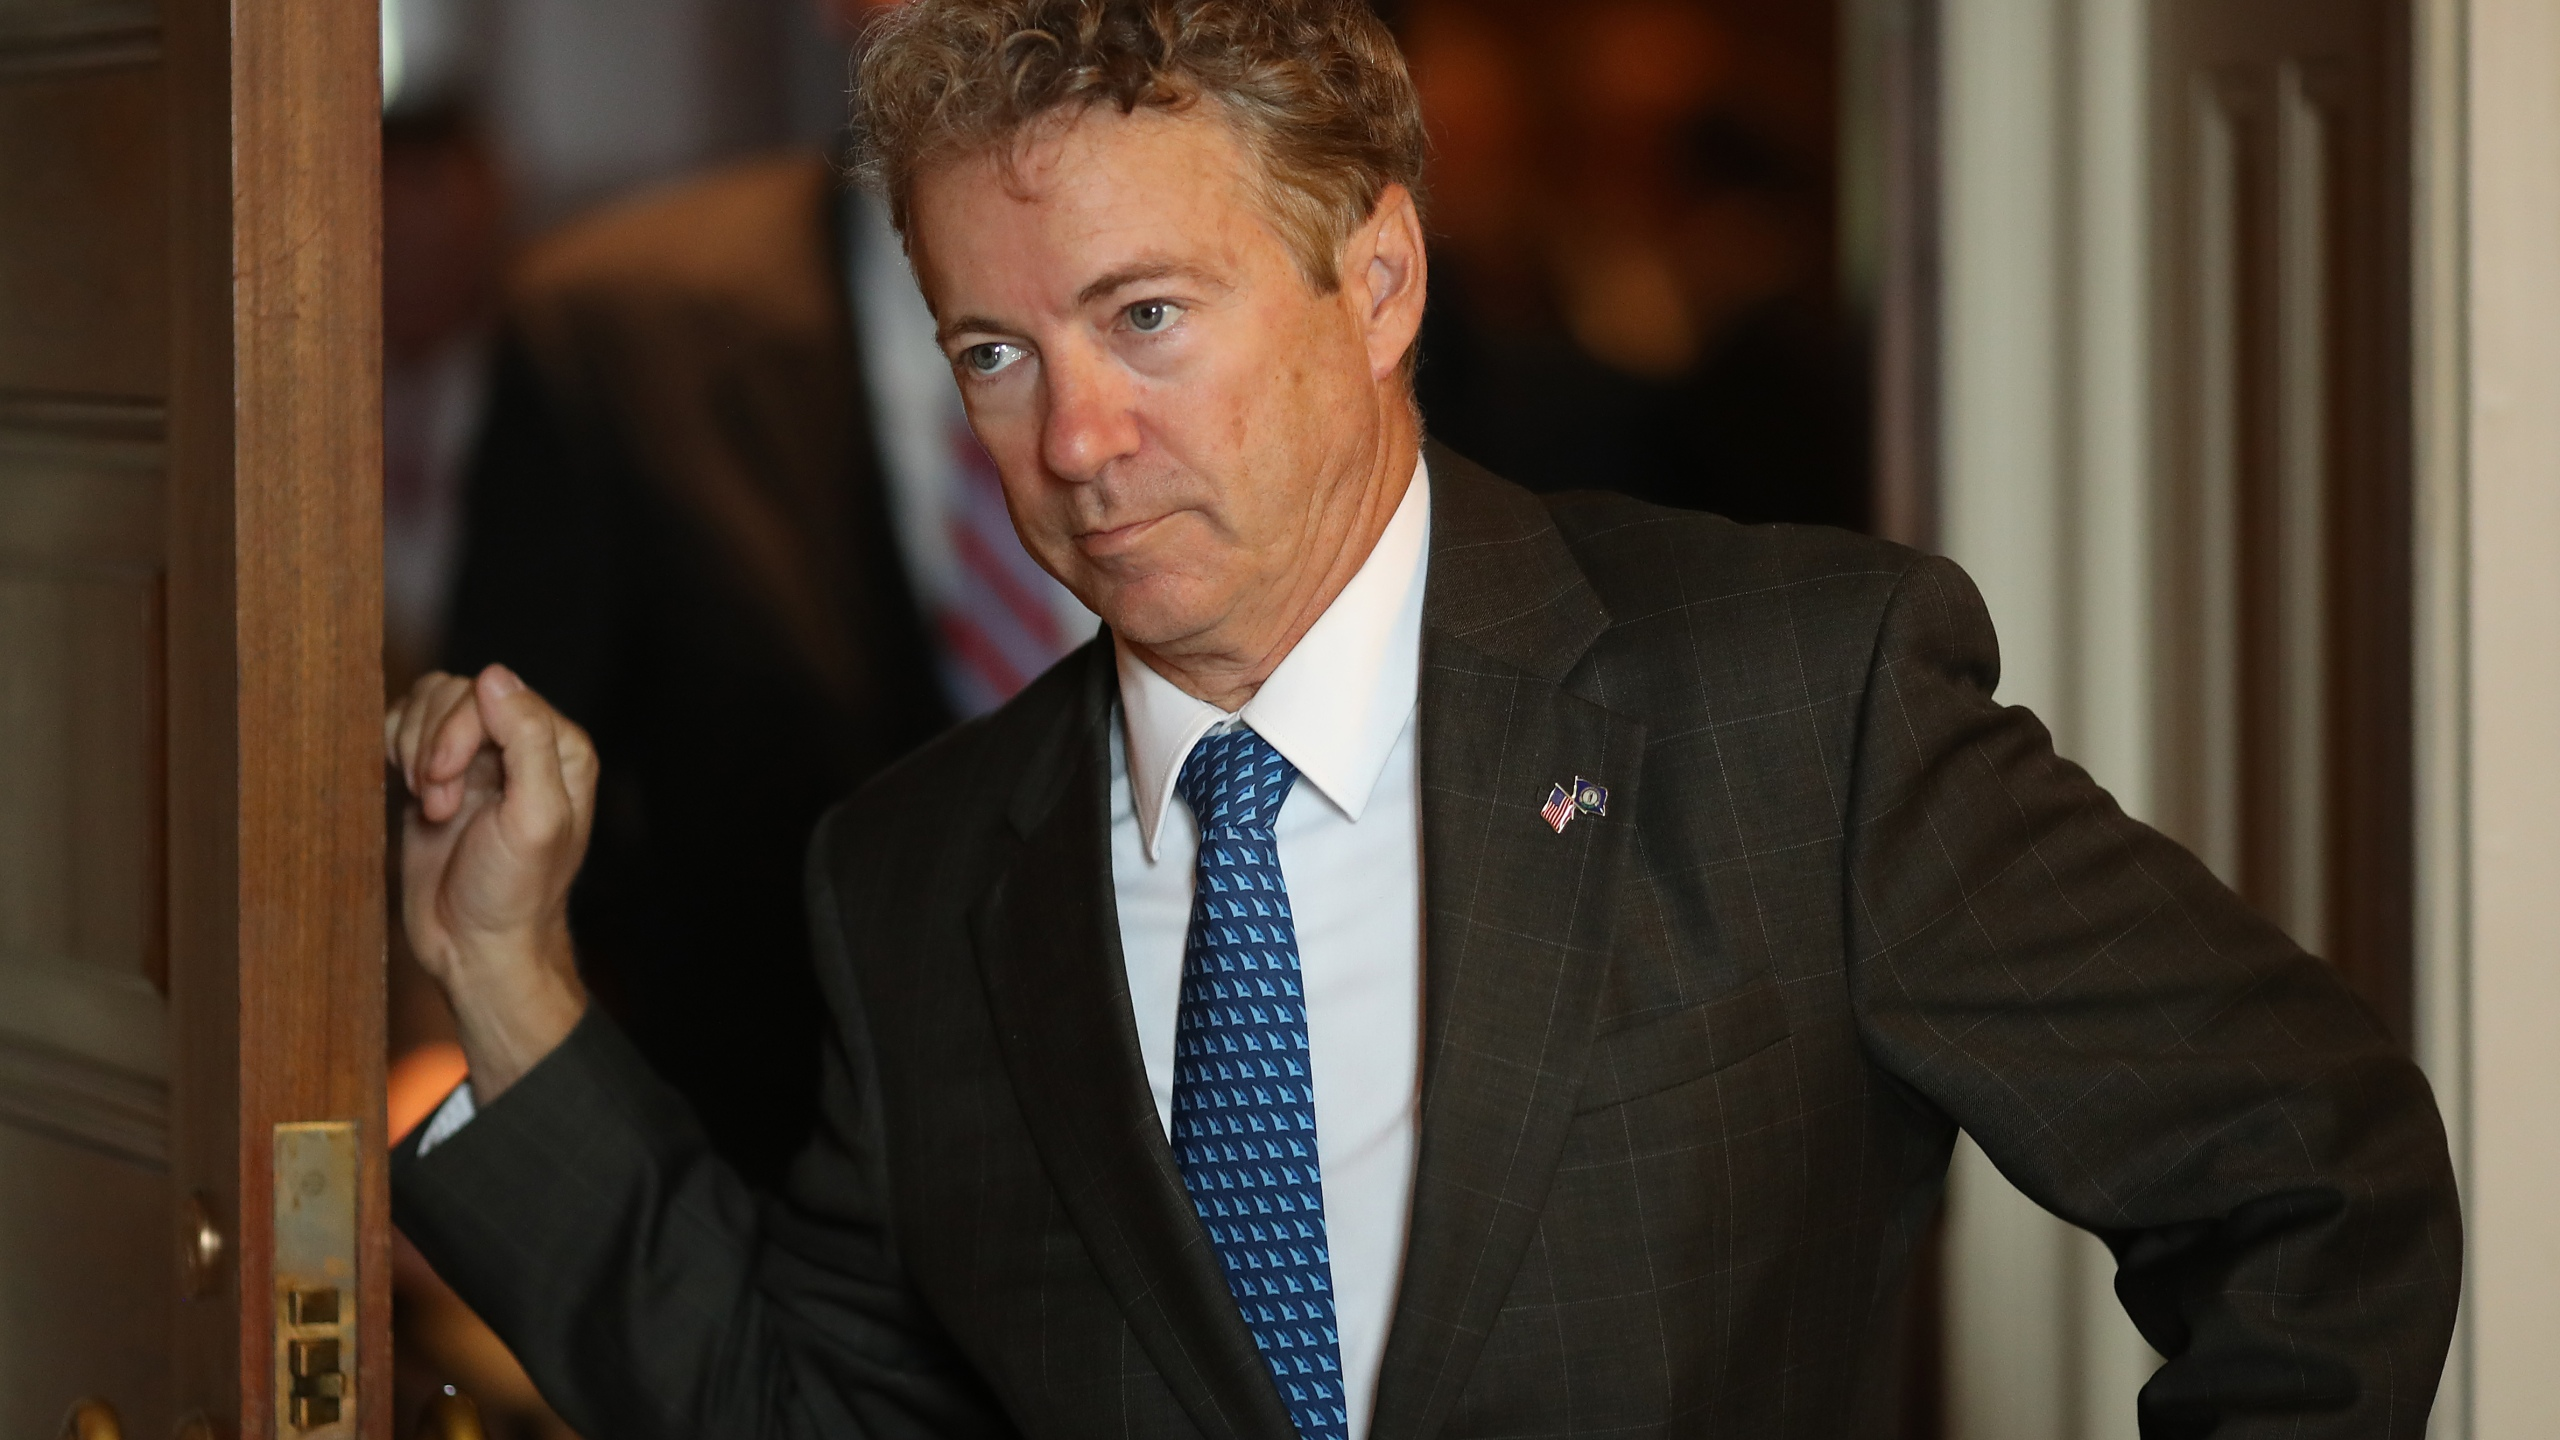 Sen. Rand Paul (R-KY) departs the weekly Republican policy luncheon on Sept. 25, 2018 in Washington, D.C. (Credit: Win McNamee/Getty Images)